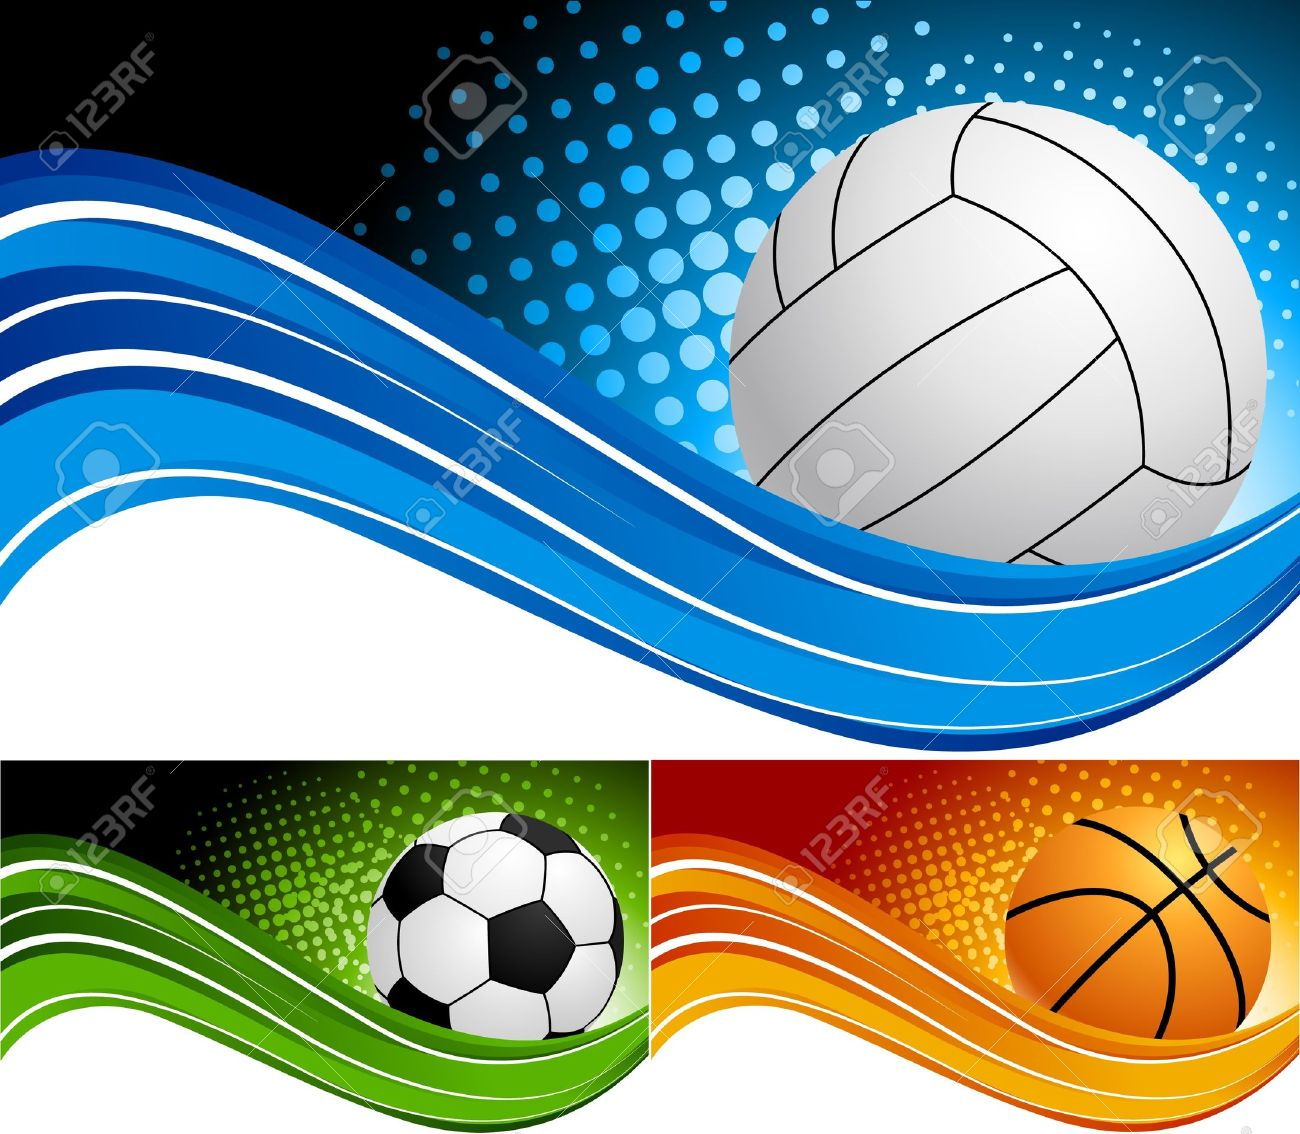 Set Sport Background Royalty Free Cliparts, Vectors, And Stock